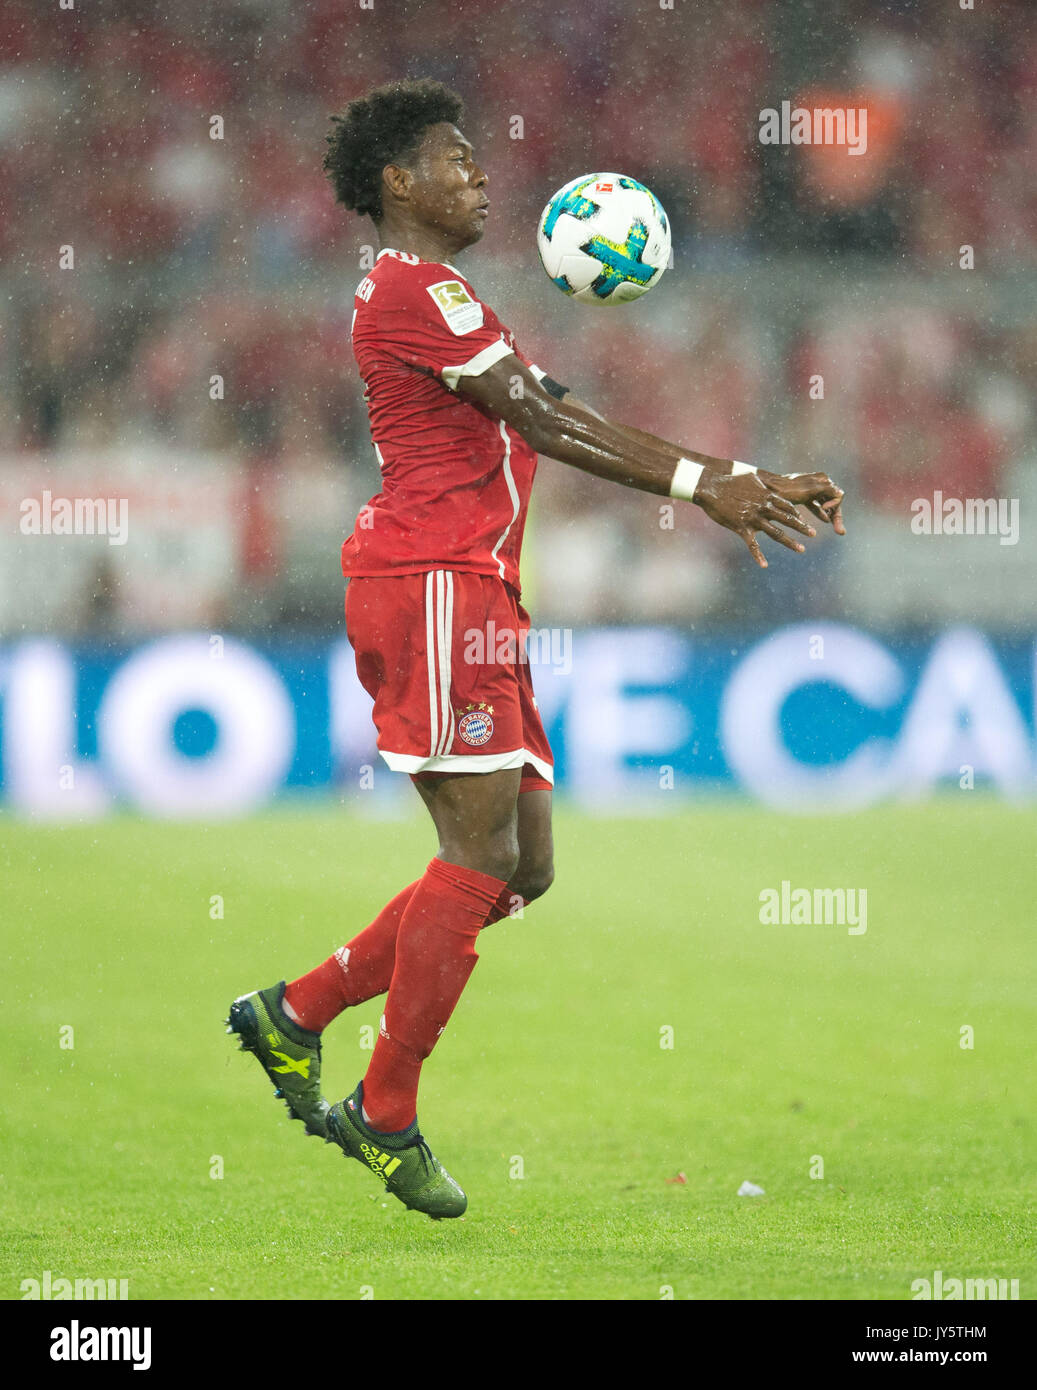 Deutschland. 18th Aug, 2017. David ALABA (FC Bayern) mit Ball, Einzelaktion GES/ Fussball/ 1. Bundesliga: FC Bayern Munich - Bayer 04 Leverkusen, 18.08.2017 -- Football/ Soccer 1st. German Bundesliga Division: Bavaria Munich vs Bayer 04 Leverkusen, Munich, August 18, 2017 | Verwendung weltweit Credit: dpa/Alamy Live News - Stock Image